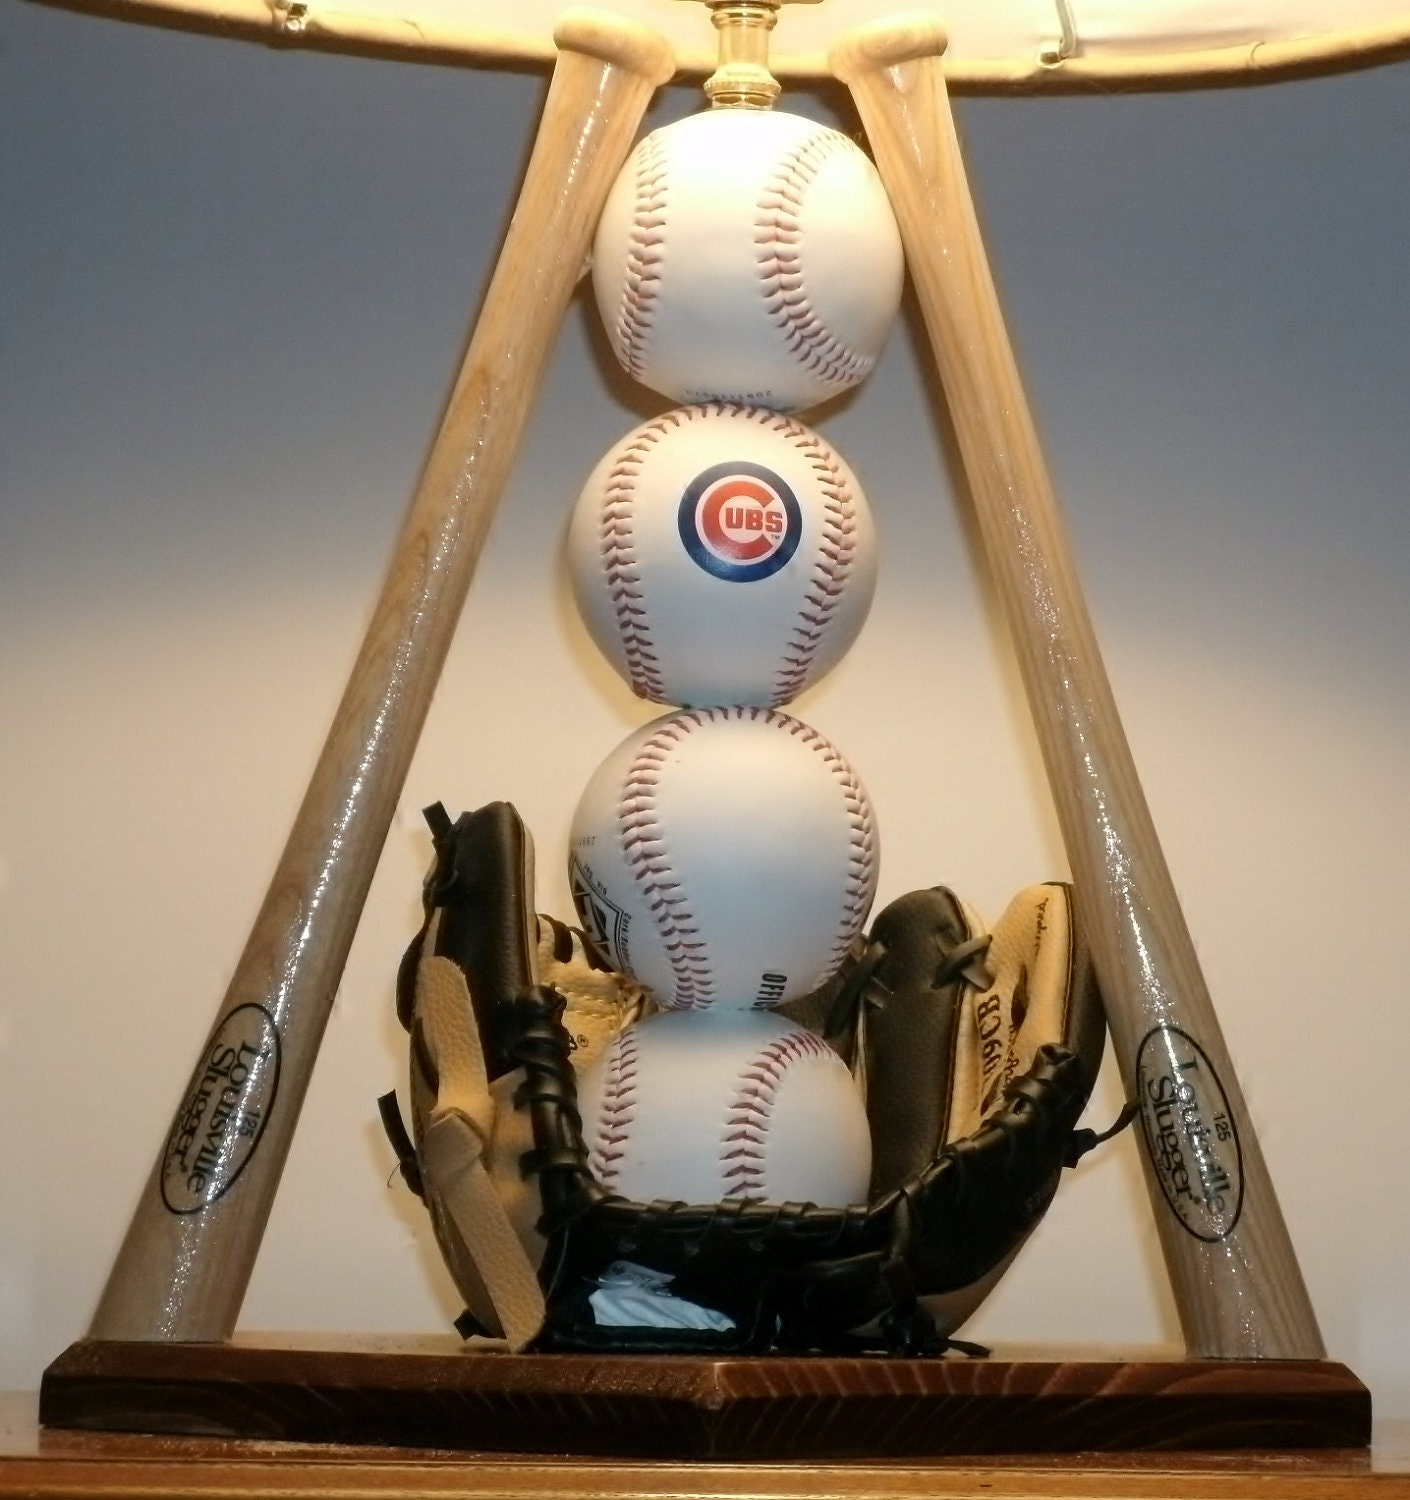 Baseball Table Lamp Show Off Your Favorite Team With This